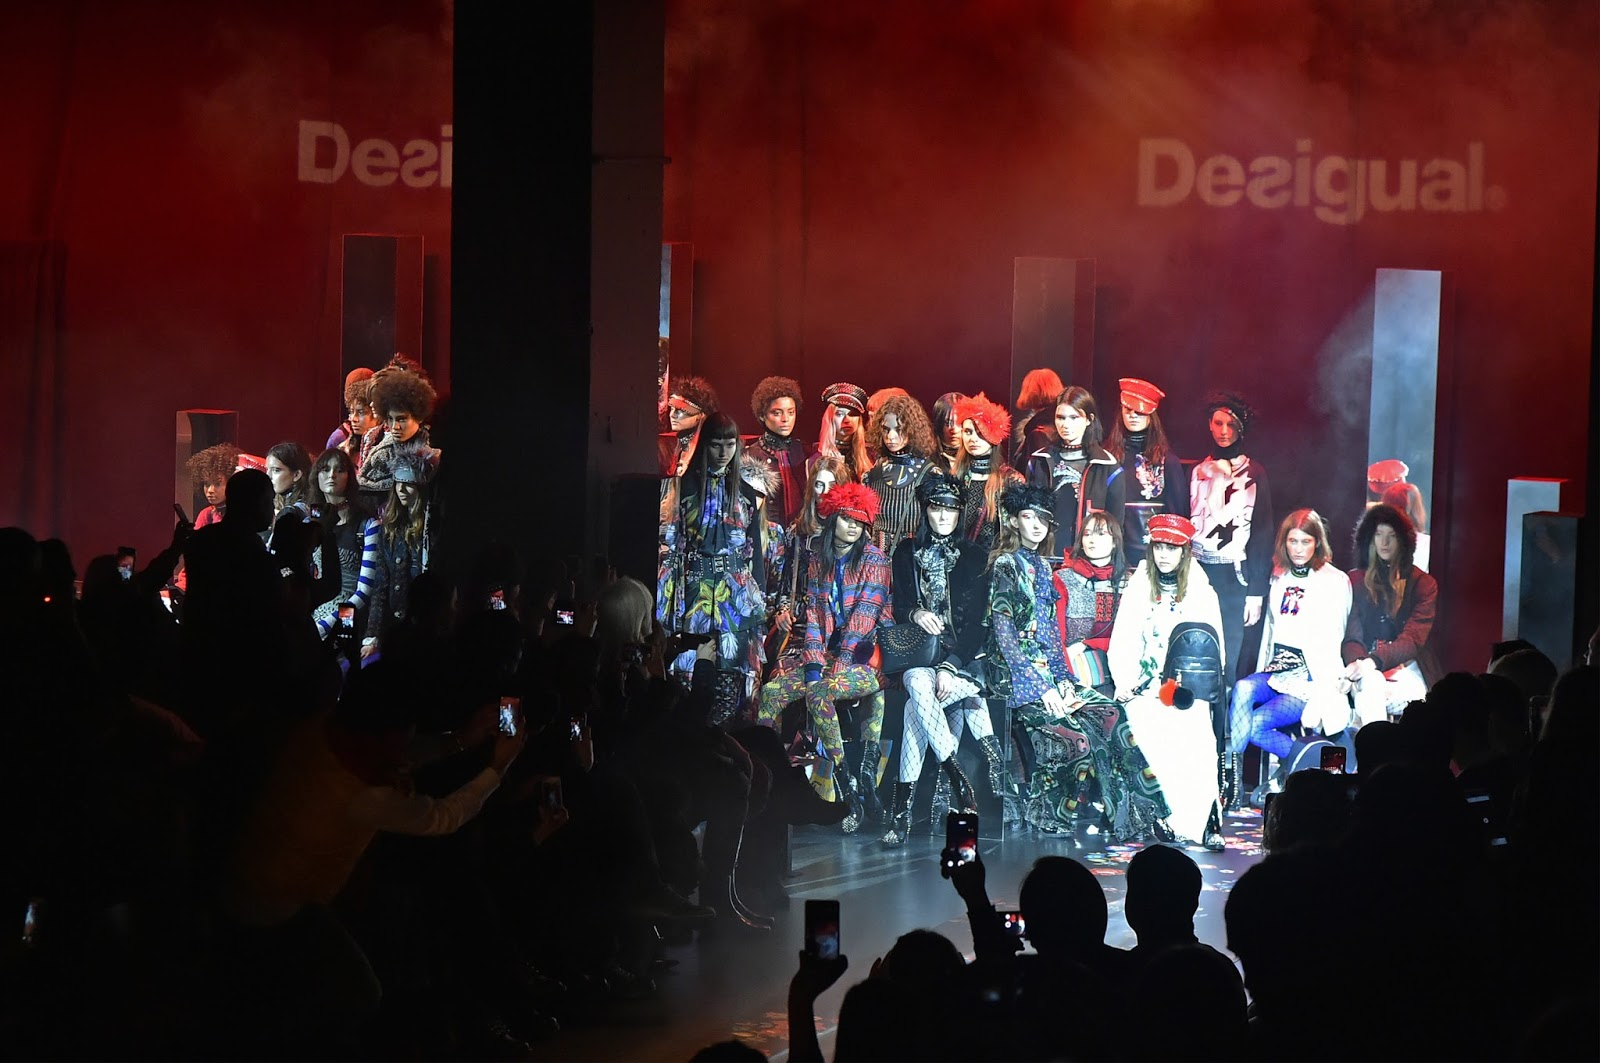 nyfw, new york fashion week, fashion week, nyfw 2017, desigual, runway, new york city fashion